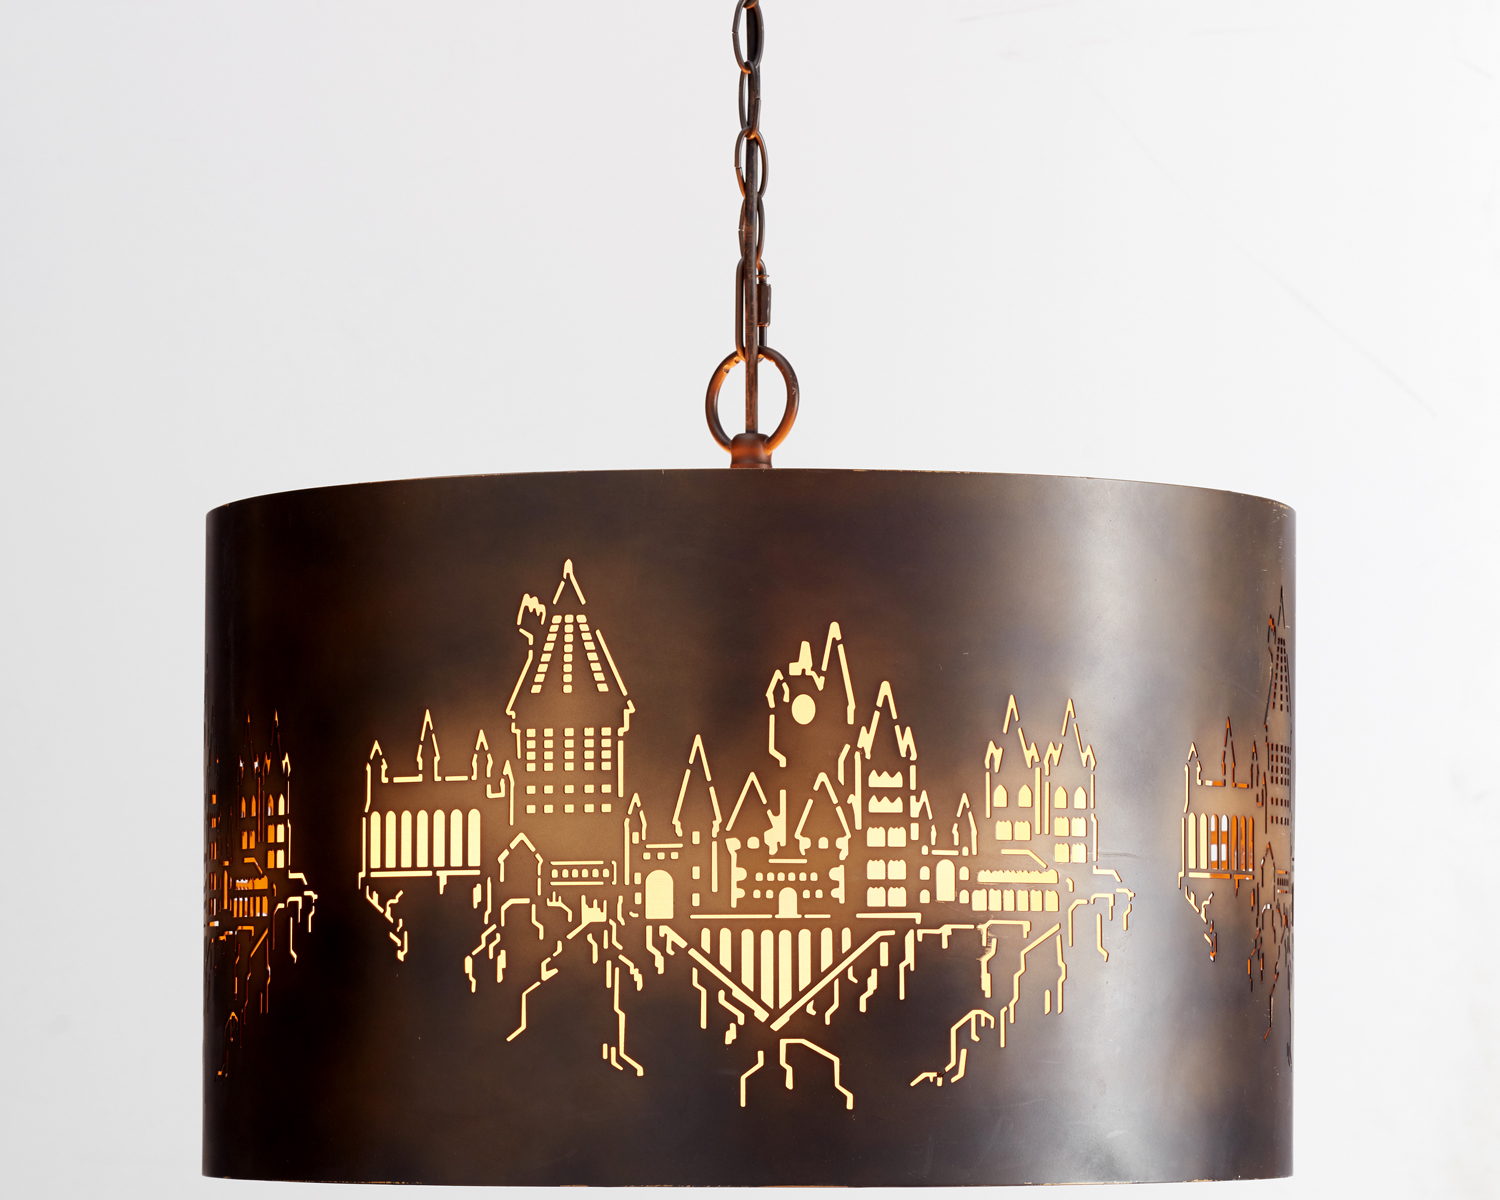 harry potter pottery barn holiday collection hanging pendant